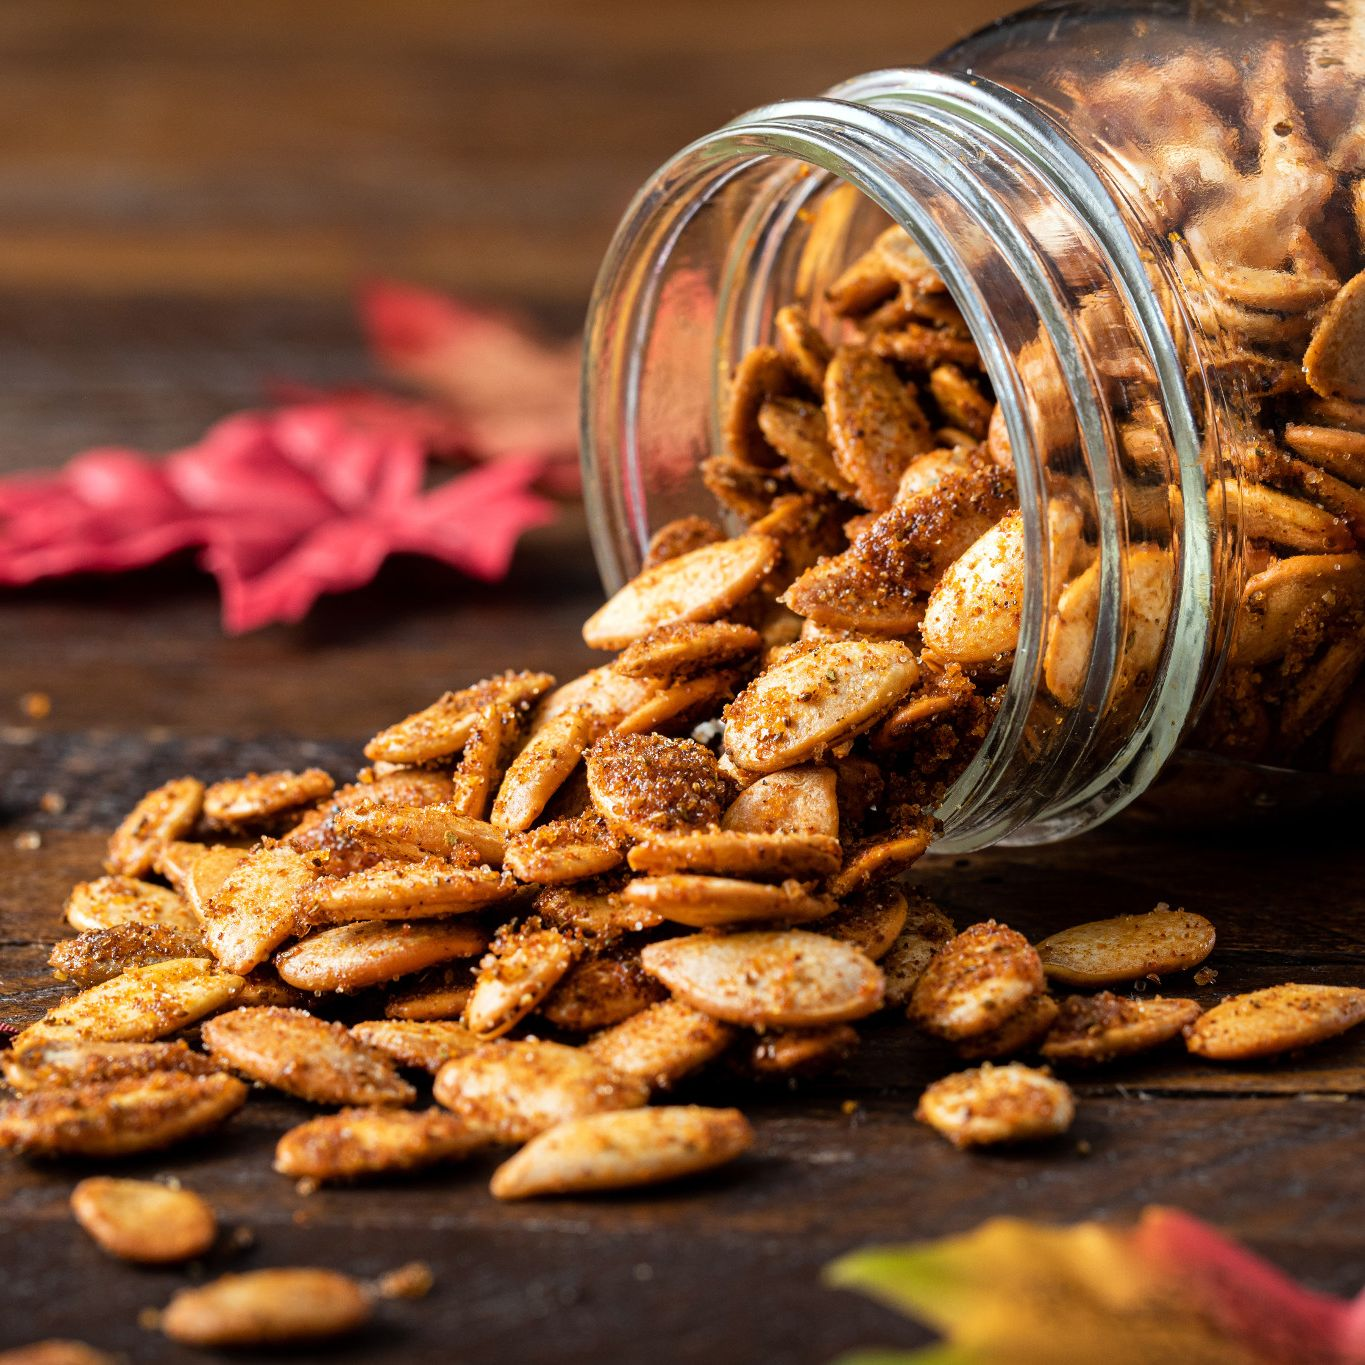 old_bay_roasted_pumpkin_seeds_5869.jpg